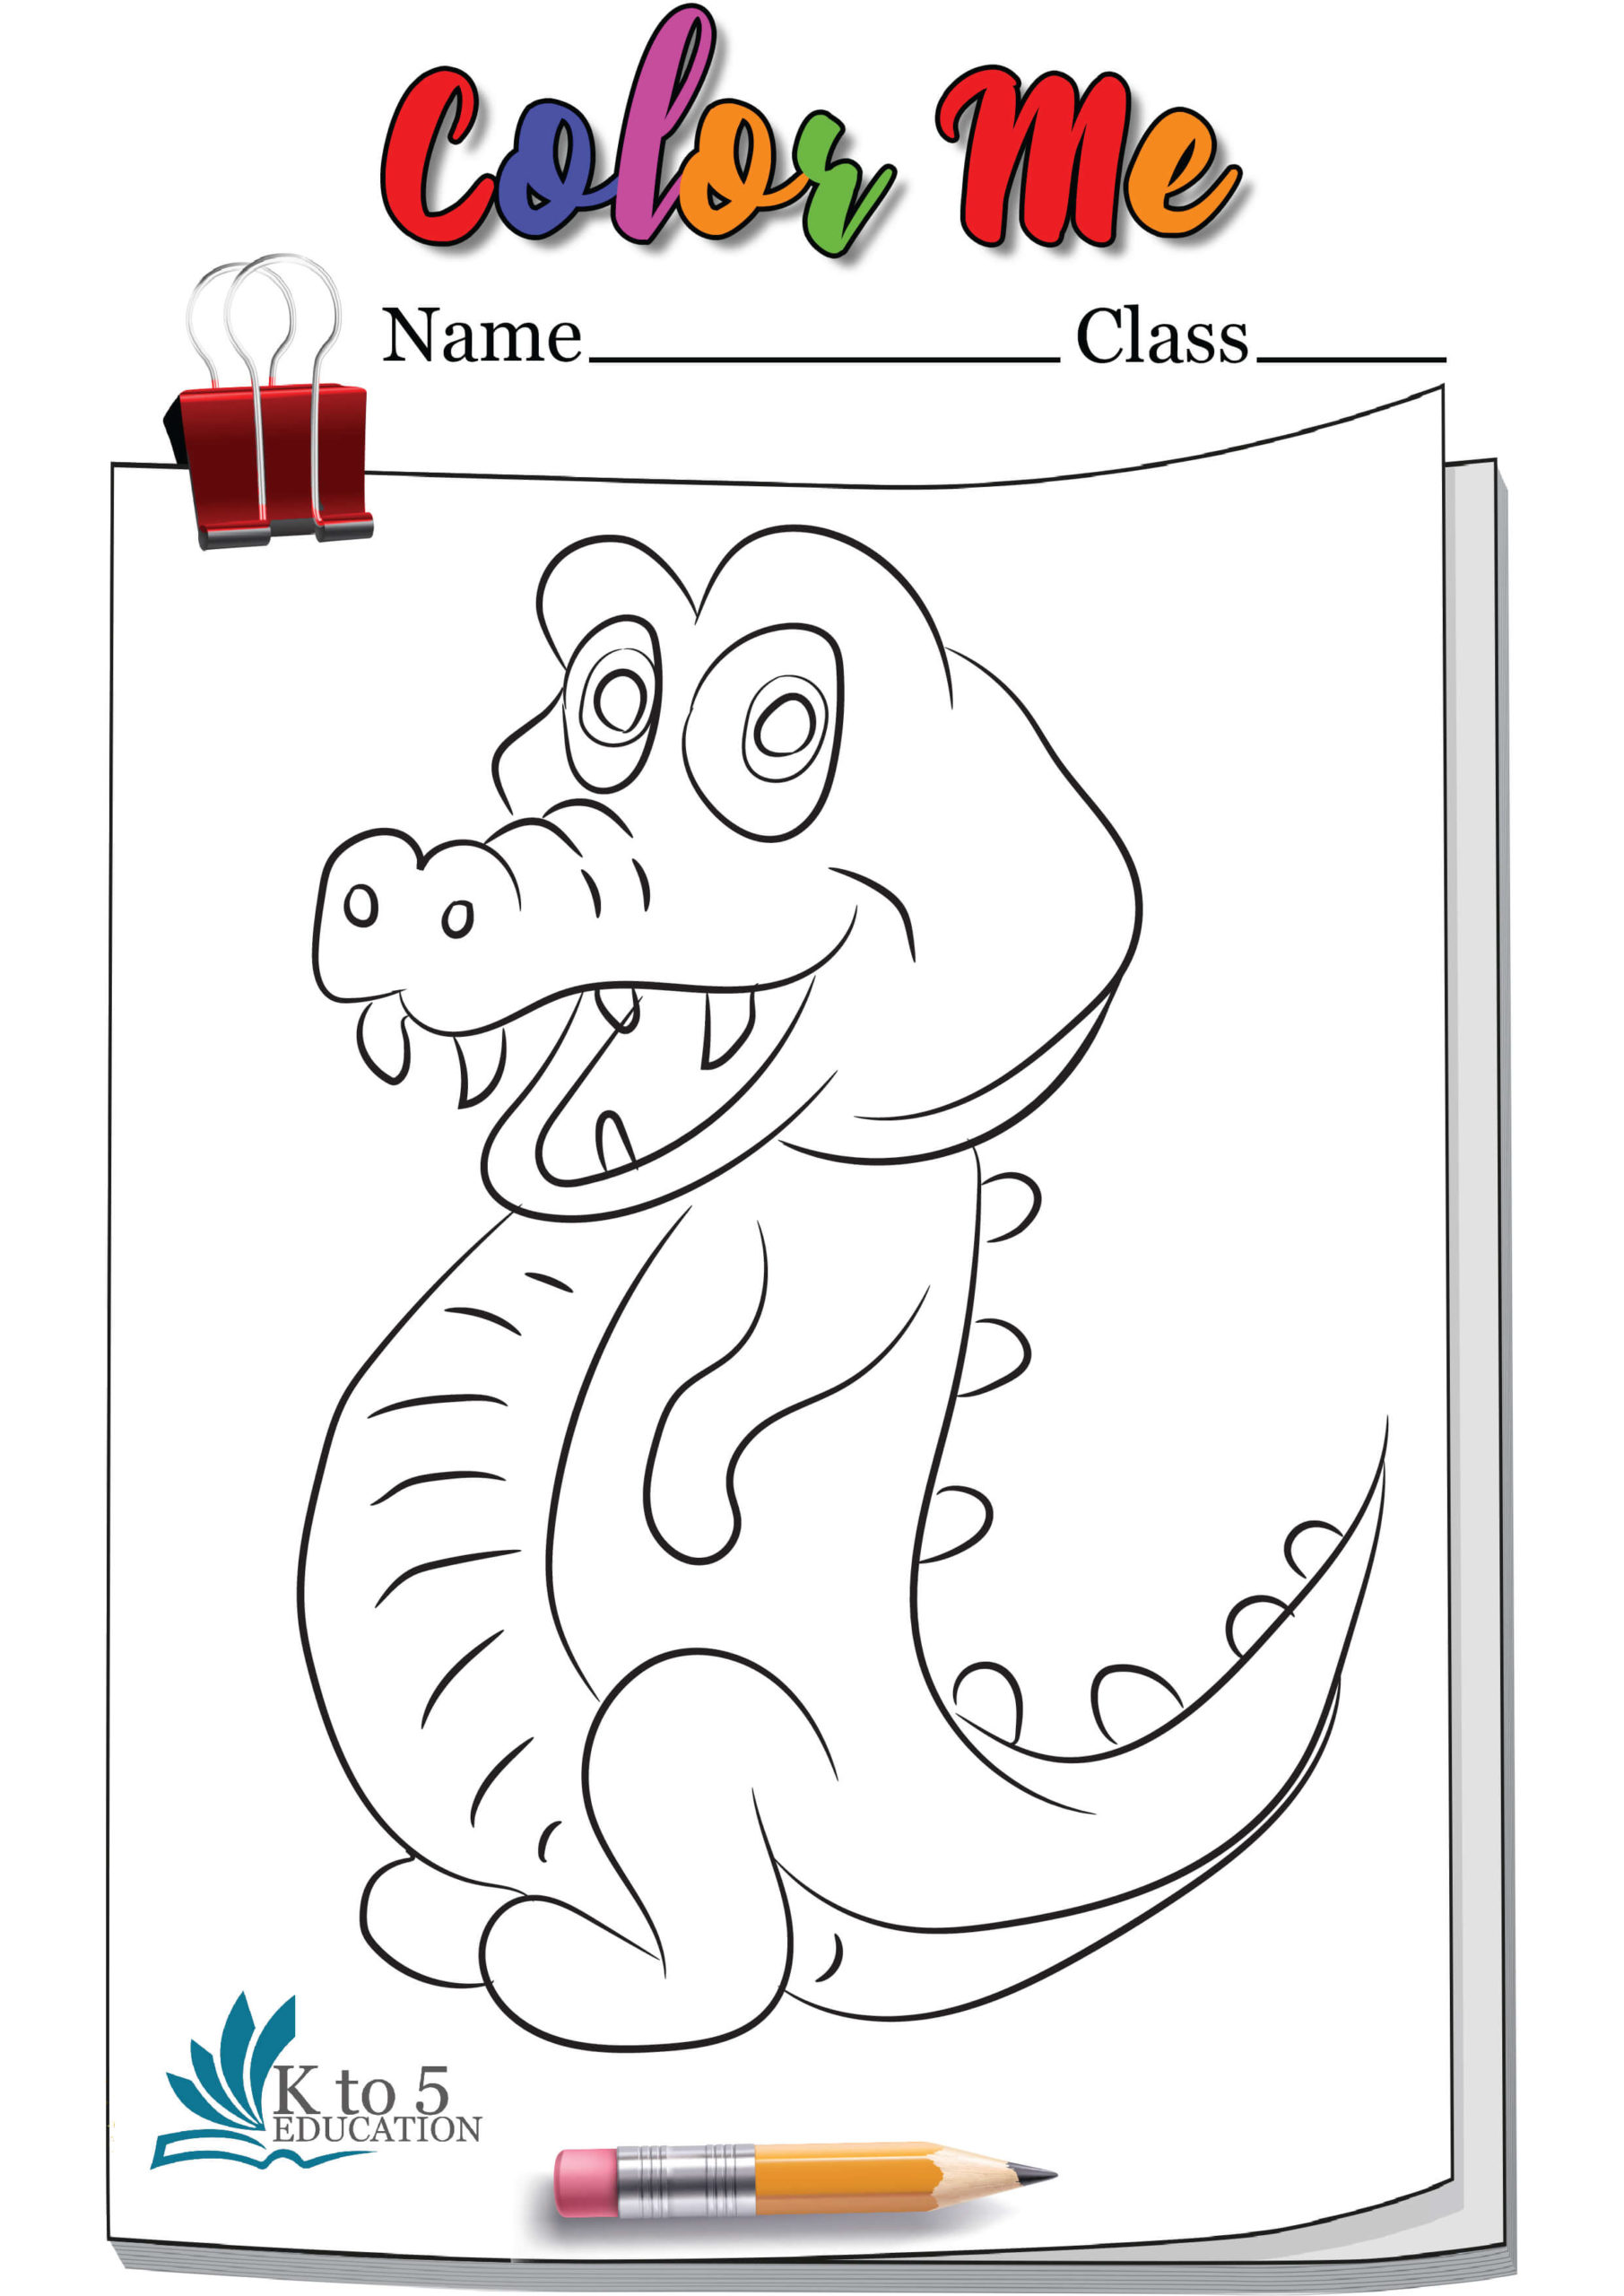 Smiling Crocodile coloring page worksheet